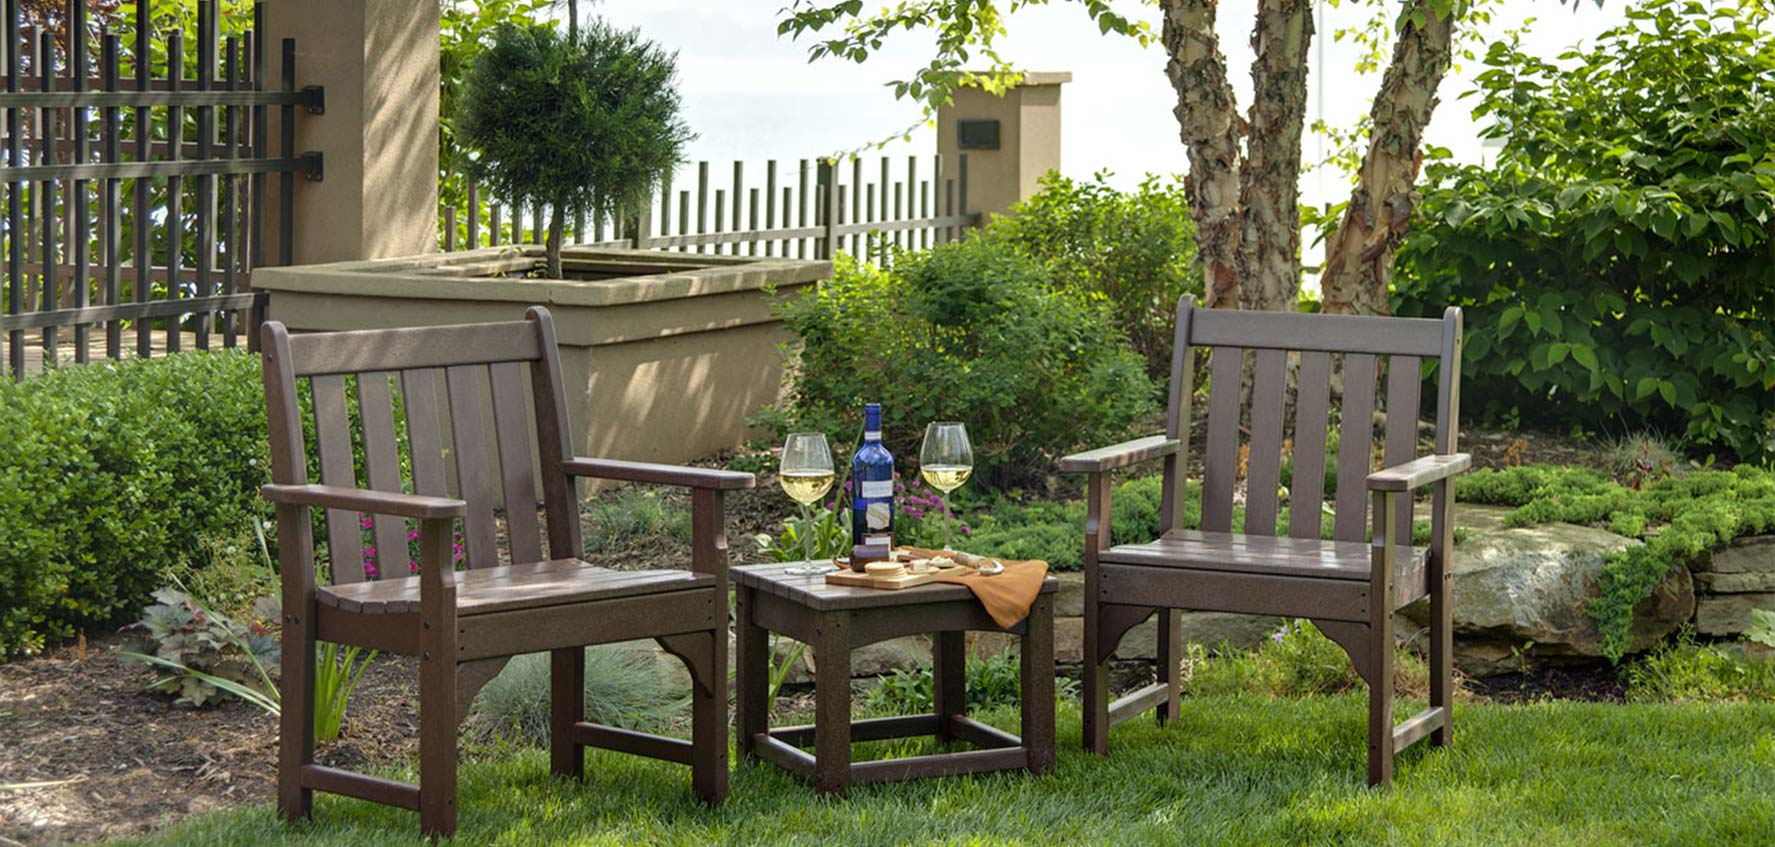 Vineyard Garden Furniture By Polywood Vermont Woods Studios